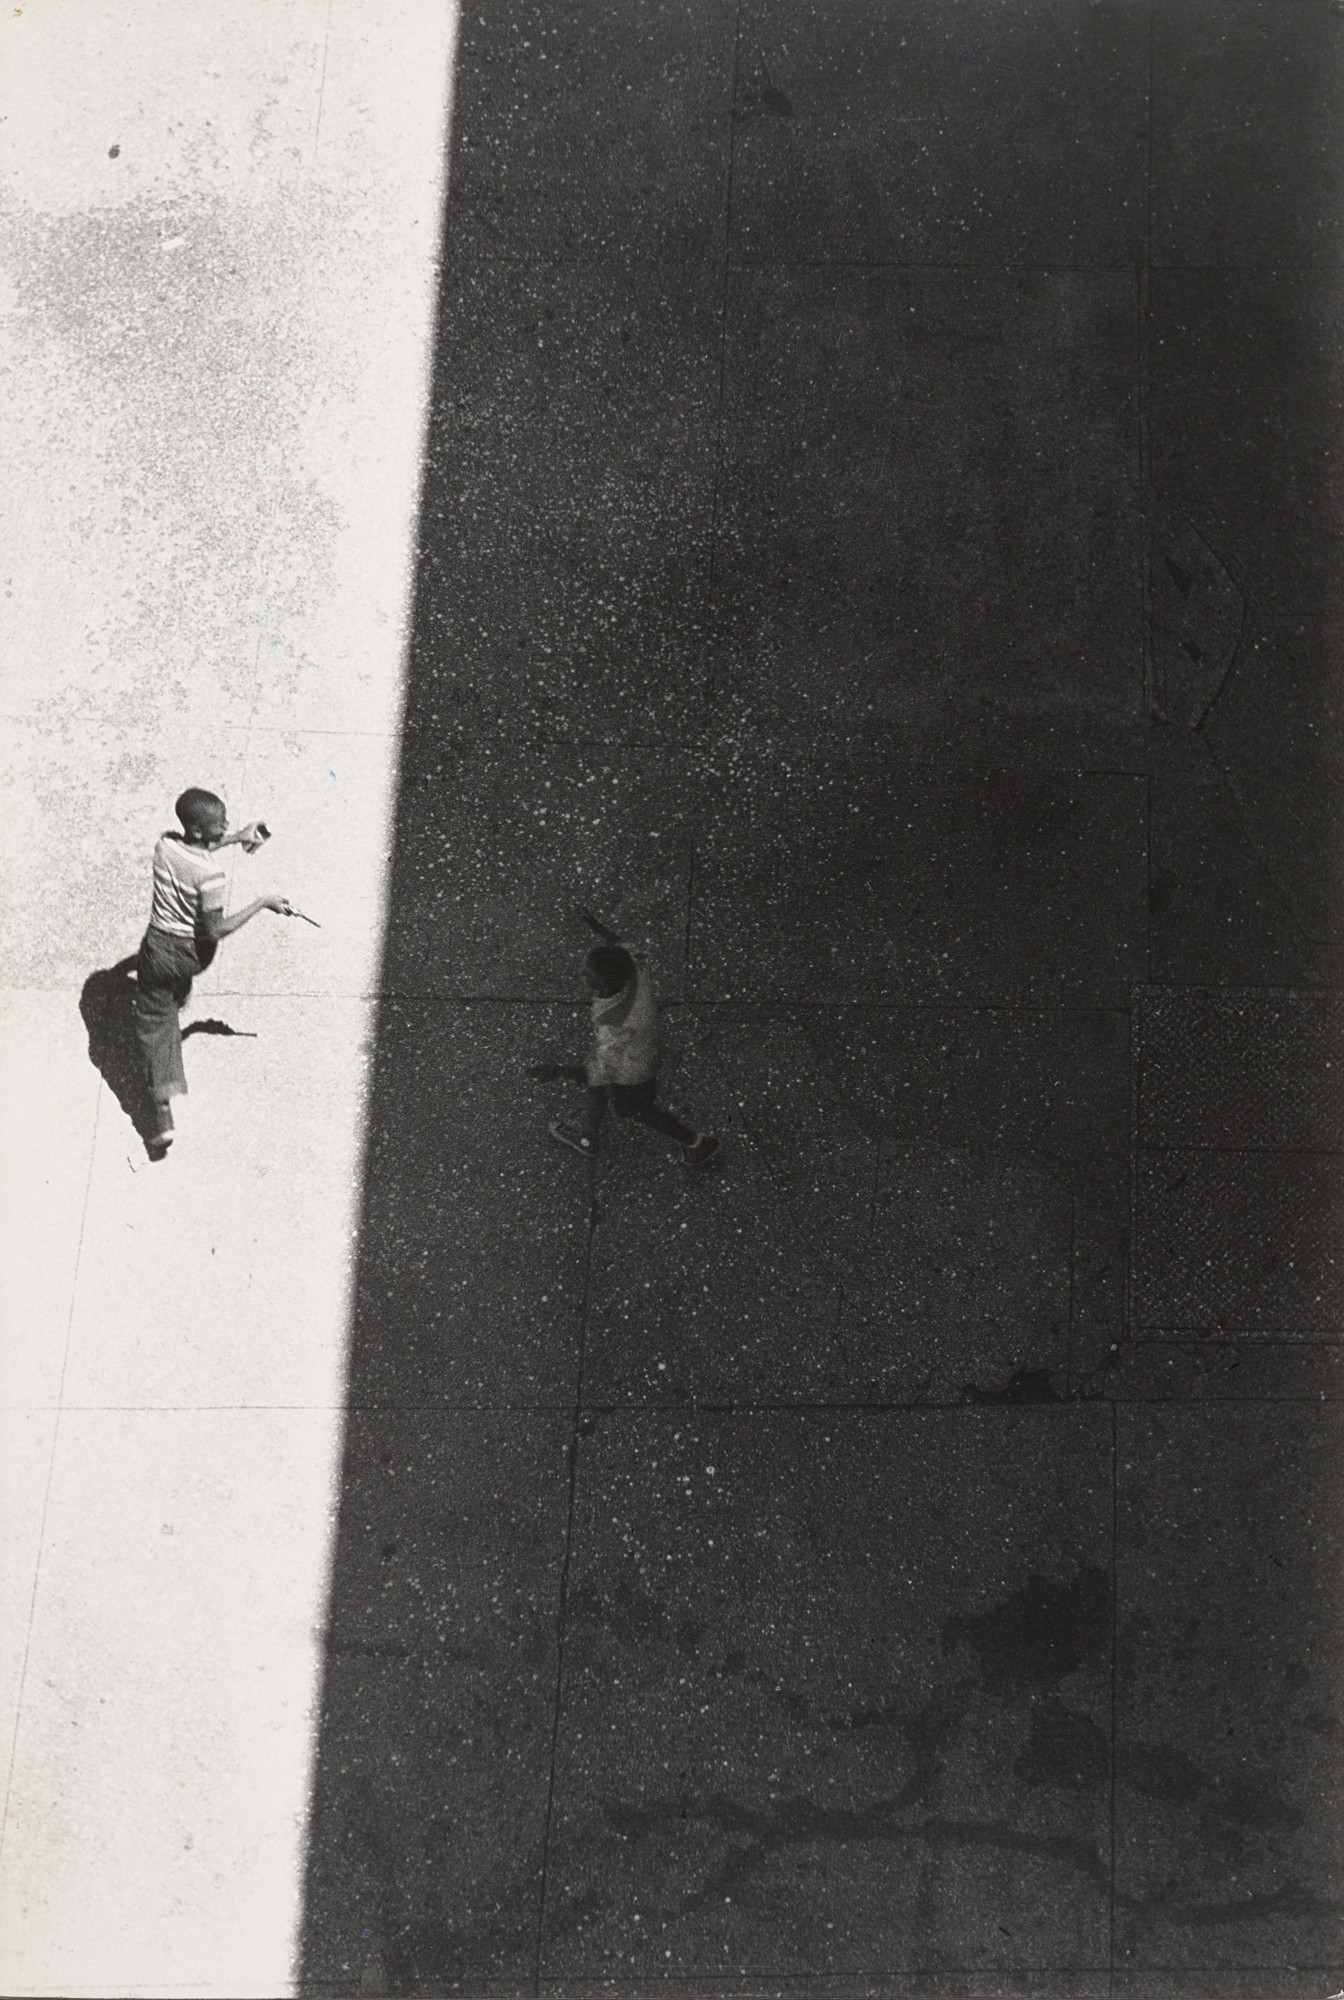 Roy DeCarava. Sun and Shade. 1952. Gelatin silver print, 13 9⁄16 × 9 3/16″ (34.4 × 23.3 cm). Gift of the photographer. © Estate of Roy De Carava